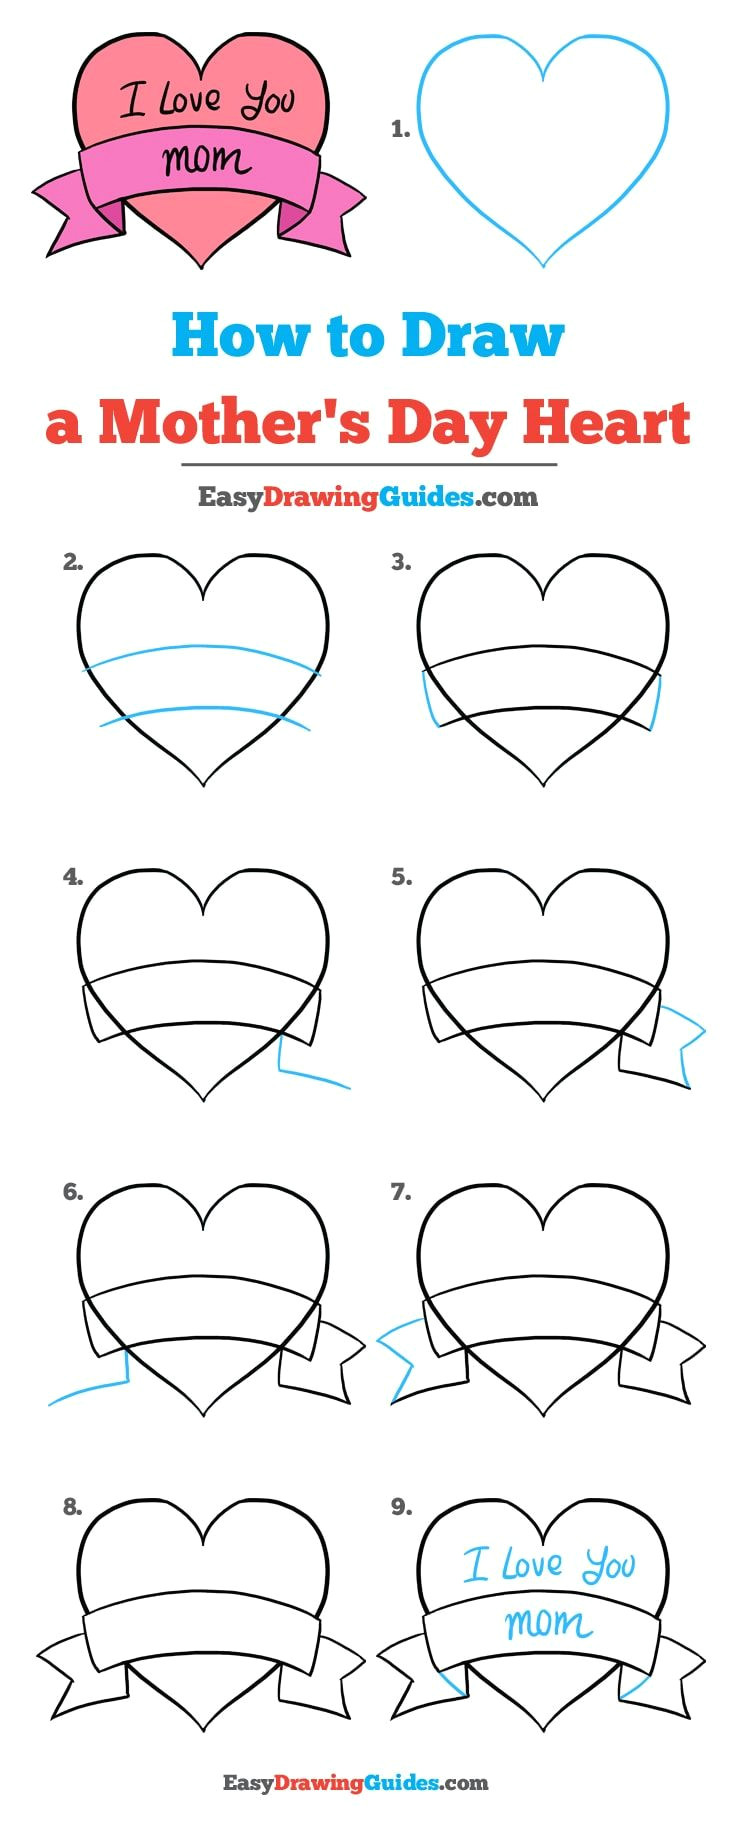 how to draw a mother s day heart really easy drawing tutorial kid activities pinterest drawings drawing tutorials for kids and step by step drawing